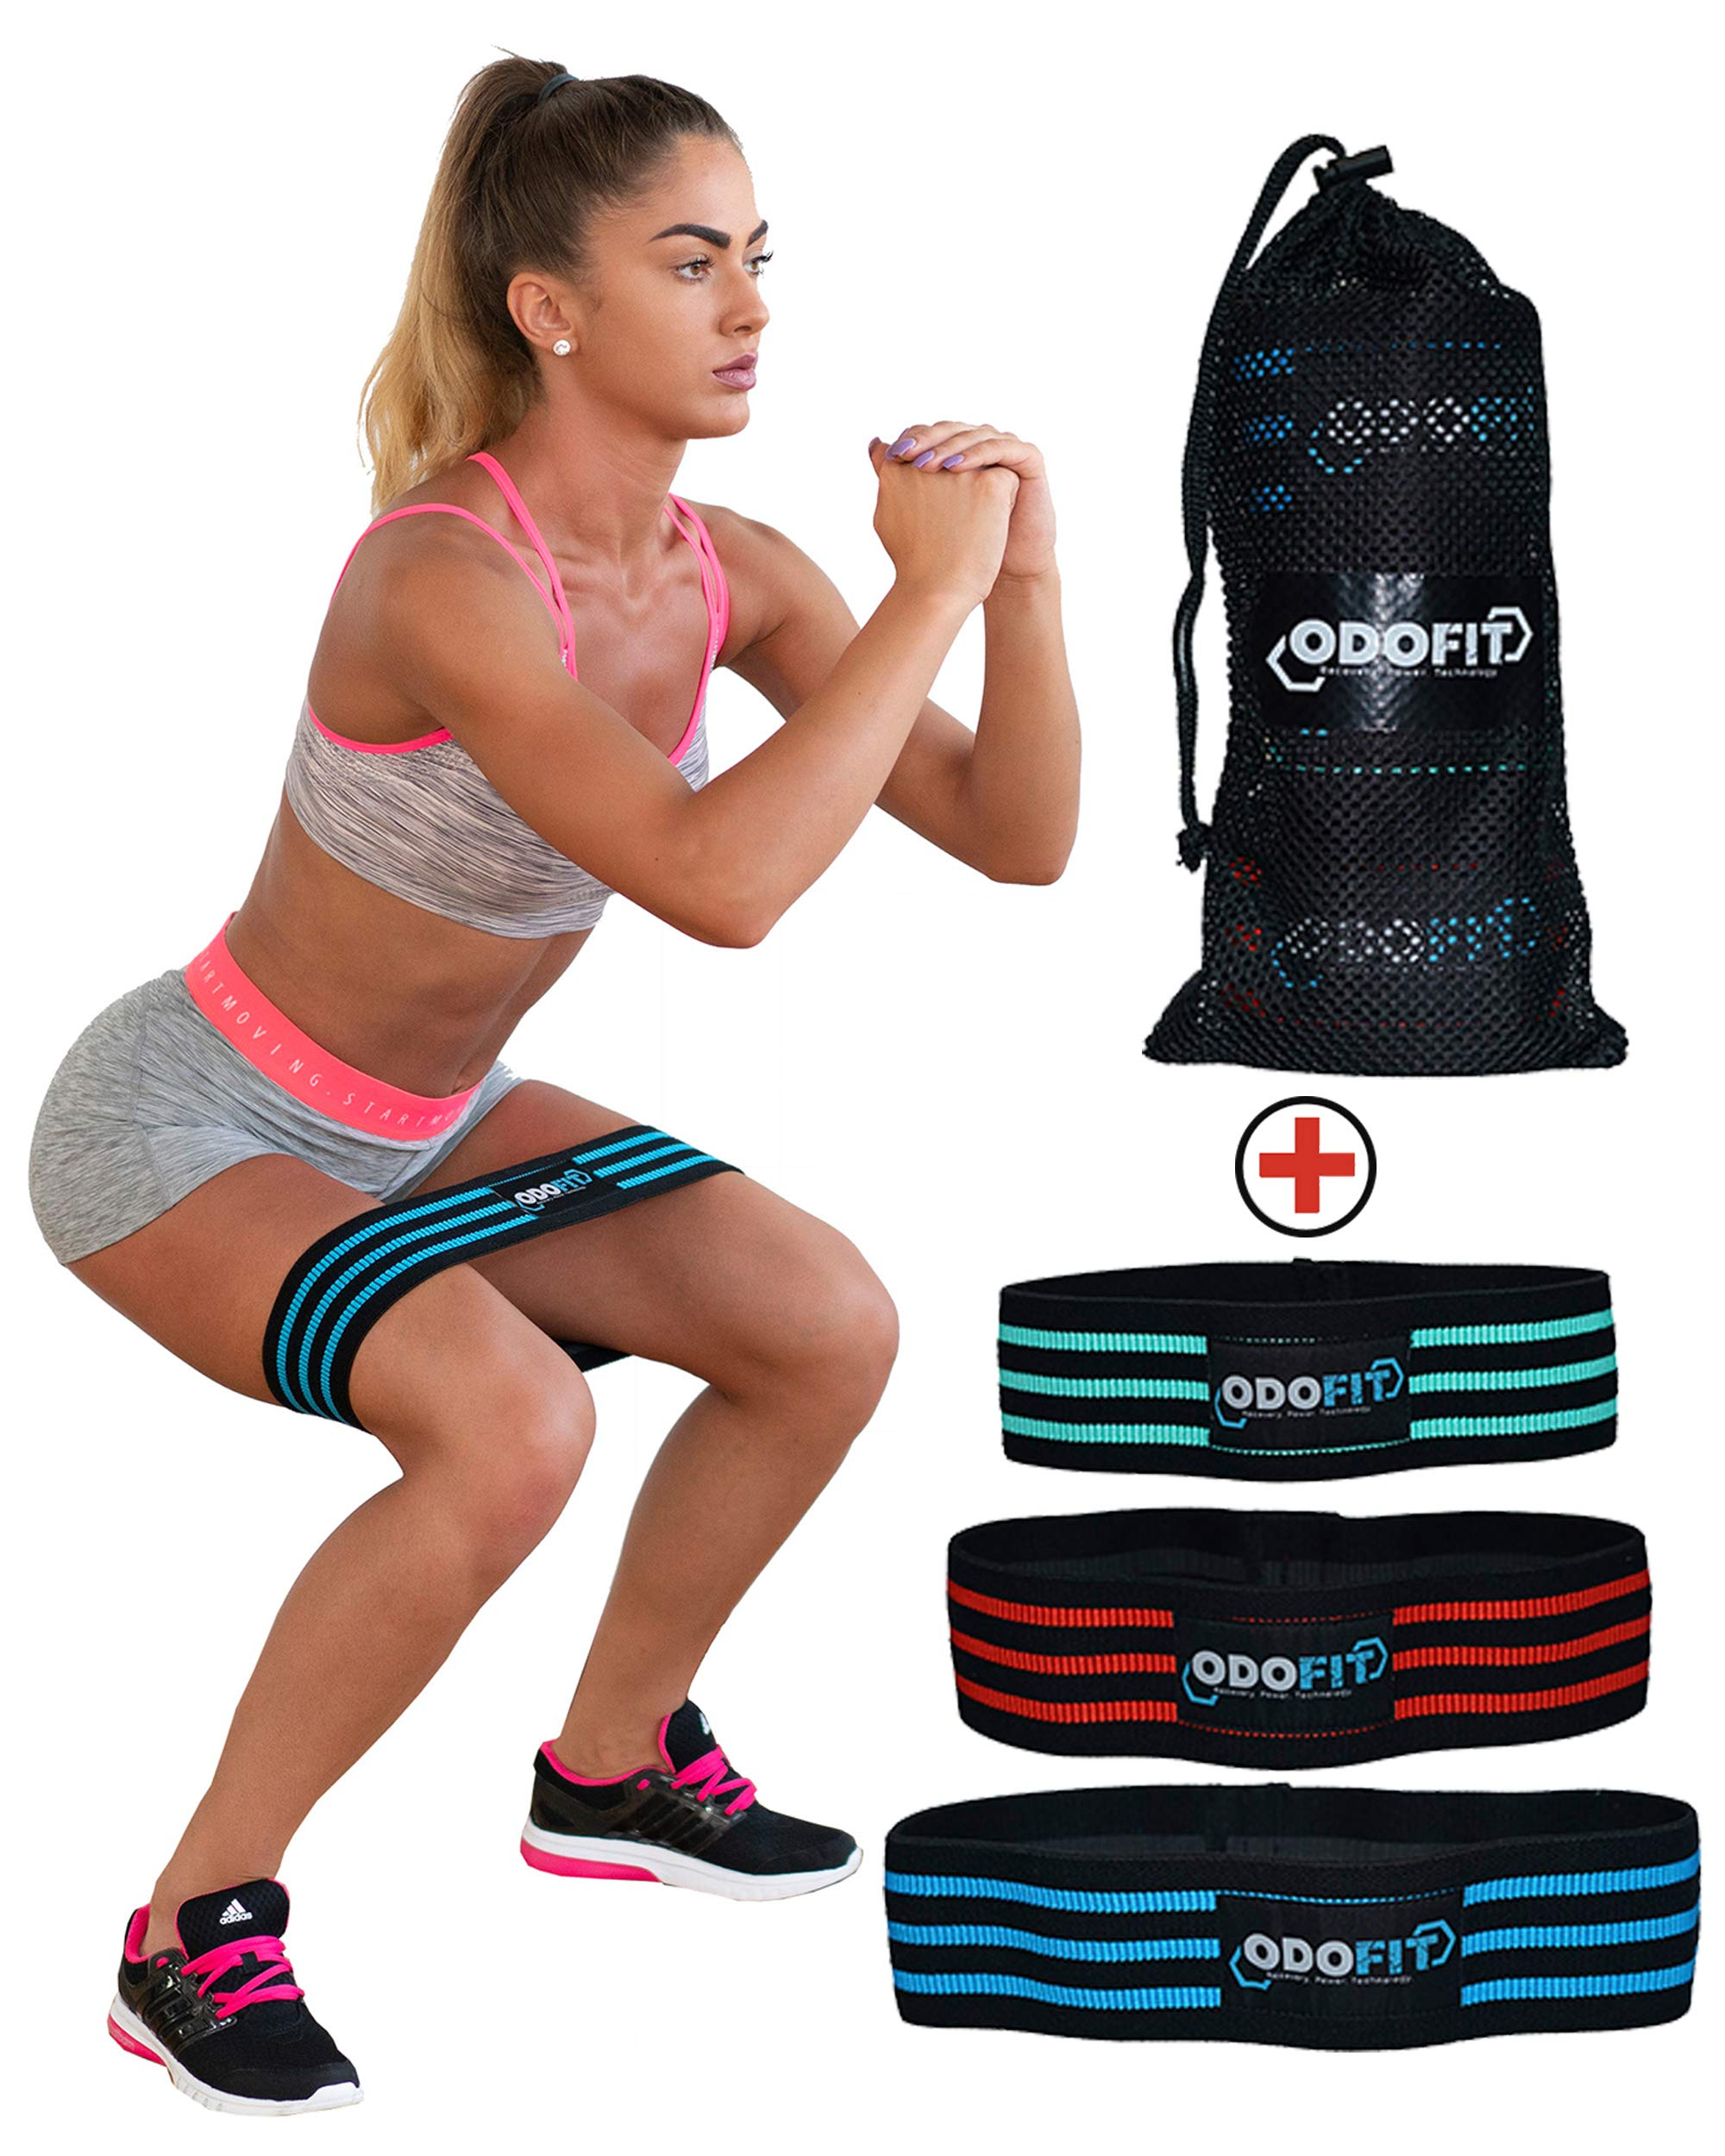 NEW Booty Resistance Bands Hip Loop Bands for Legs and Butt Workout -Set of 3 Fabric Non Slip Glute Elastic Exercise Band for Warm-Up and Squat -Activate Quads & Thighs, Thick, Wide Cloth, Women